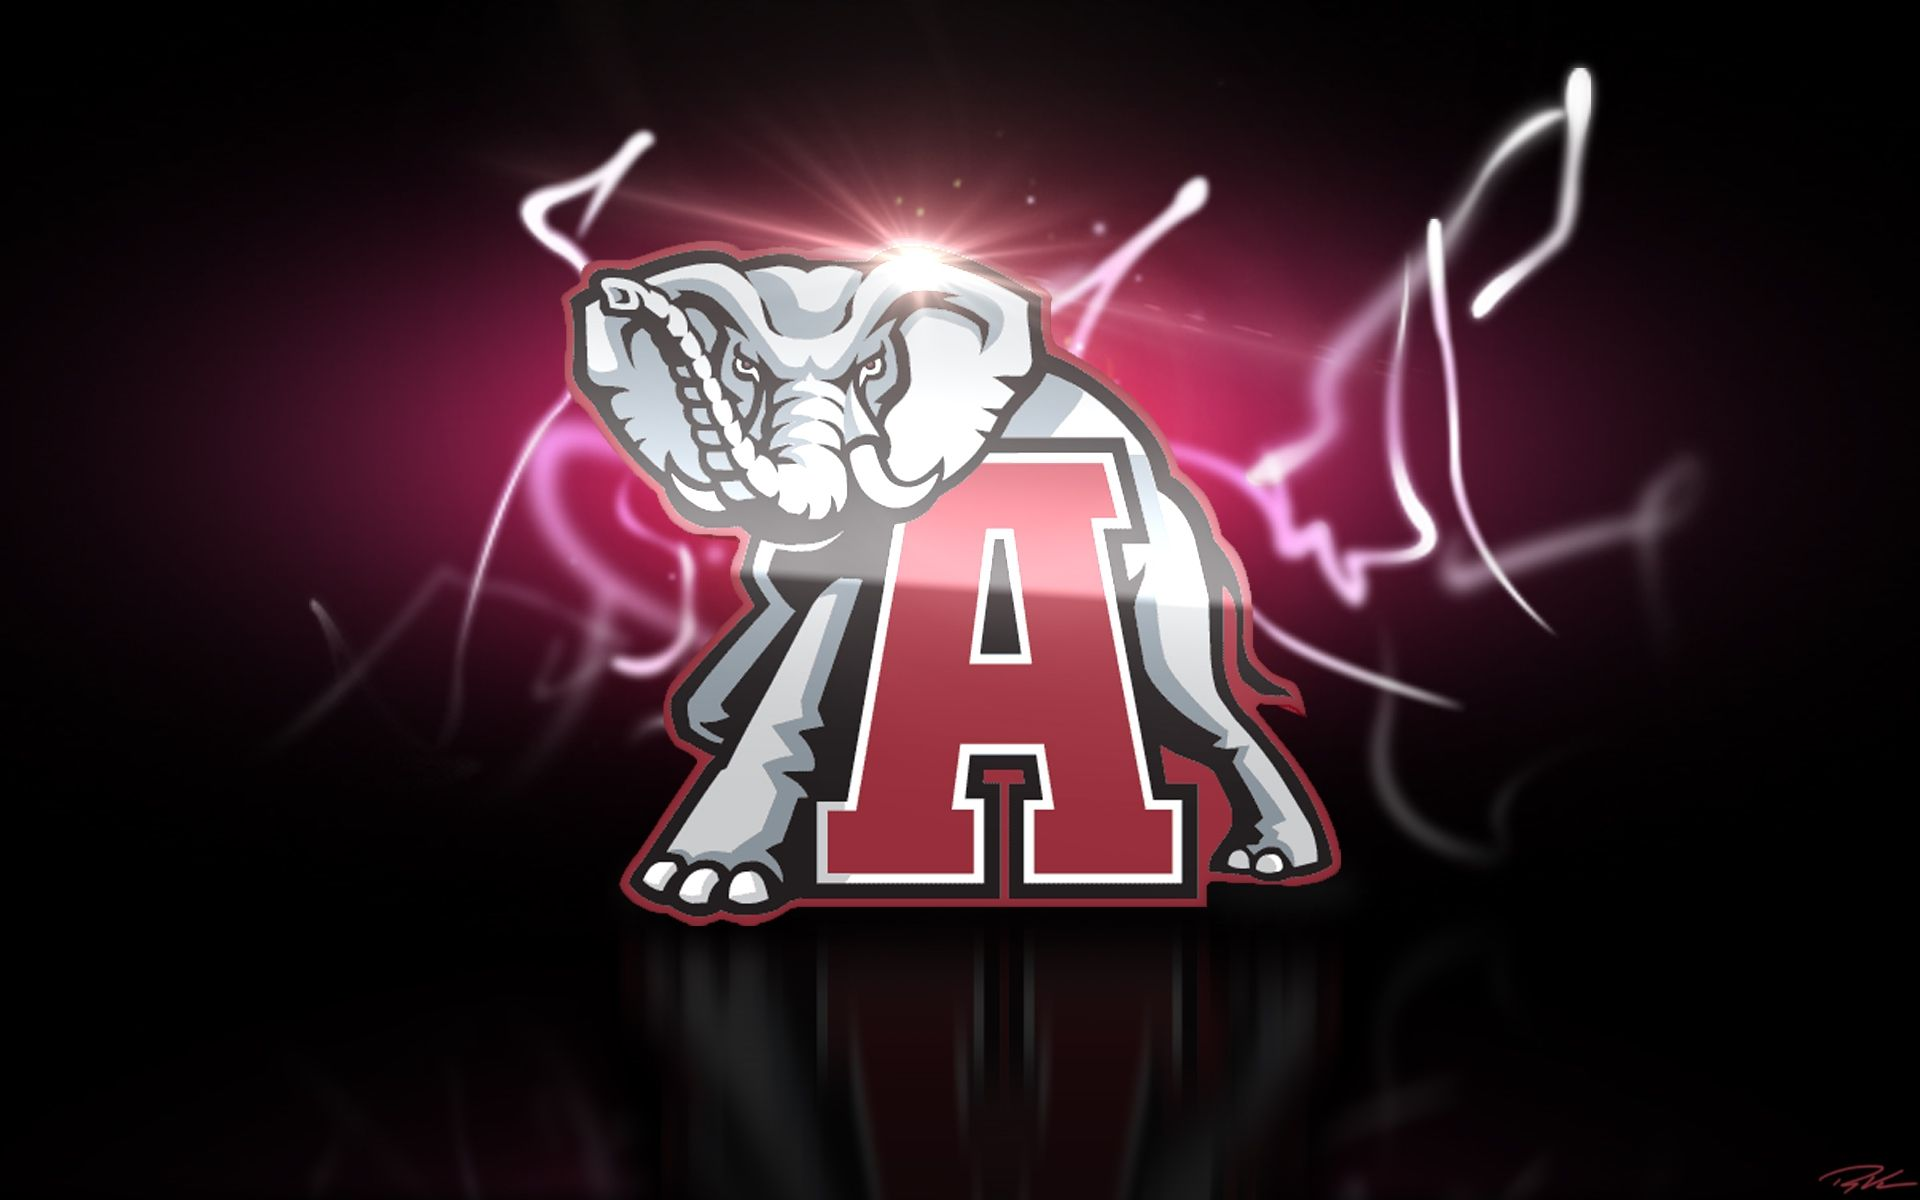 Download Free Alabama Wallpapers For Your Mobile Phone Most